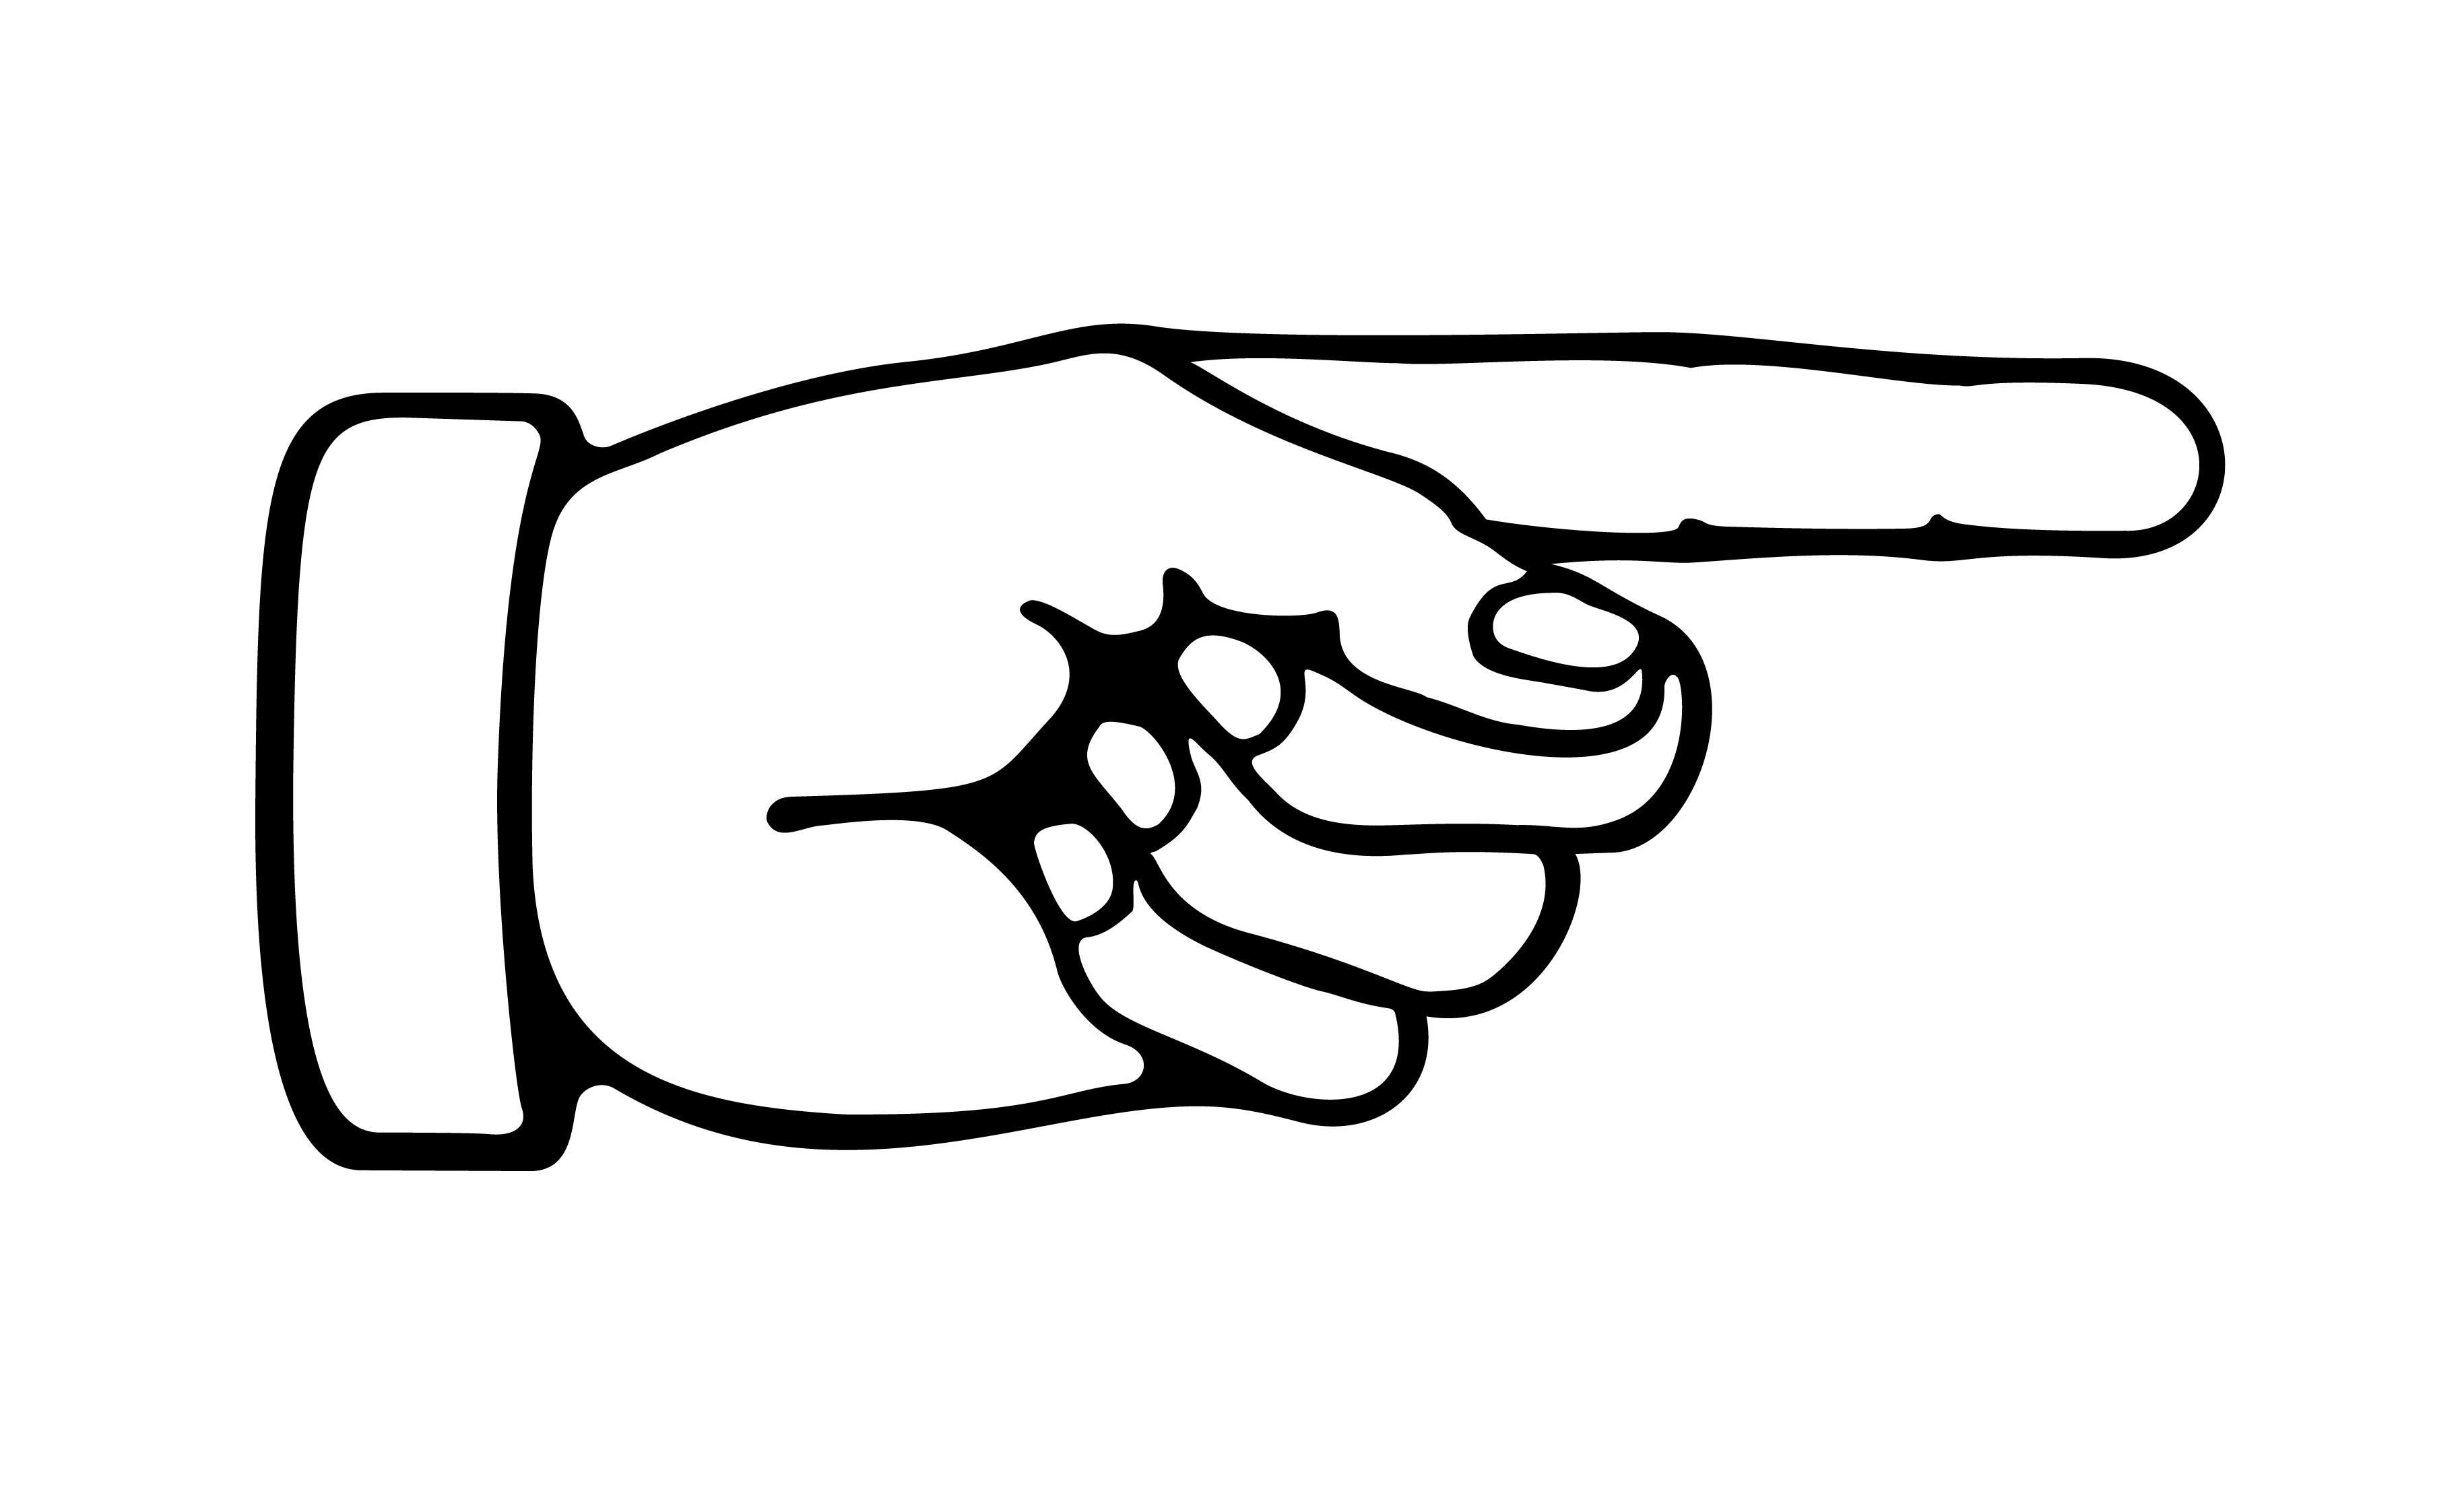 Finger clipart #2, Download drawings